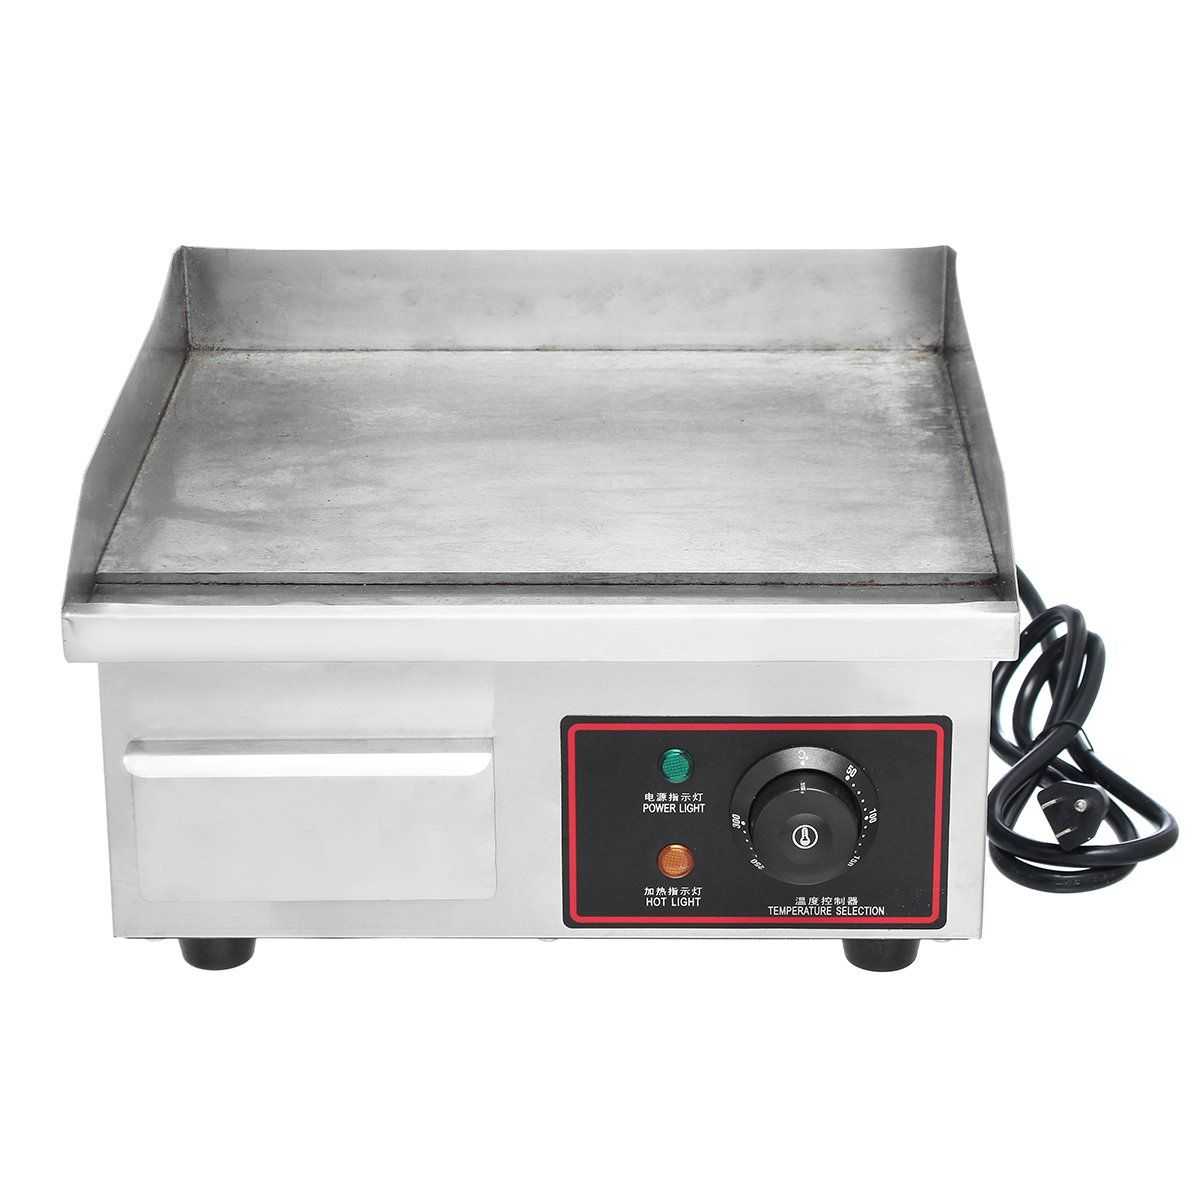 1500w 110v Electric Countertop Griddle Commercial Restaurant Flat Top Grill Bbq Flat Top Grill Countertops Bbq Sale